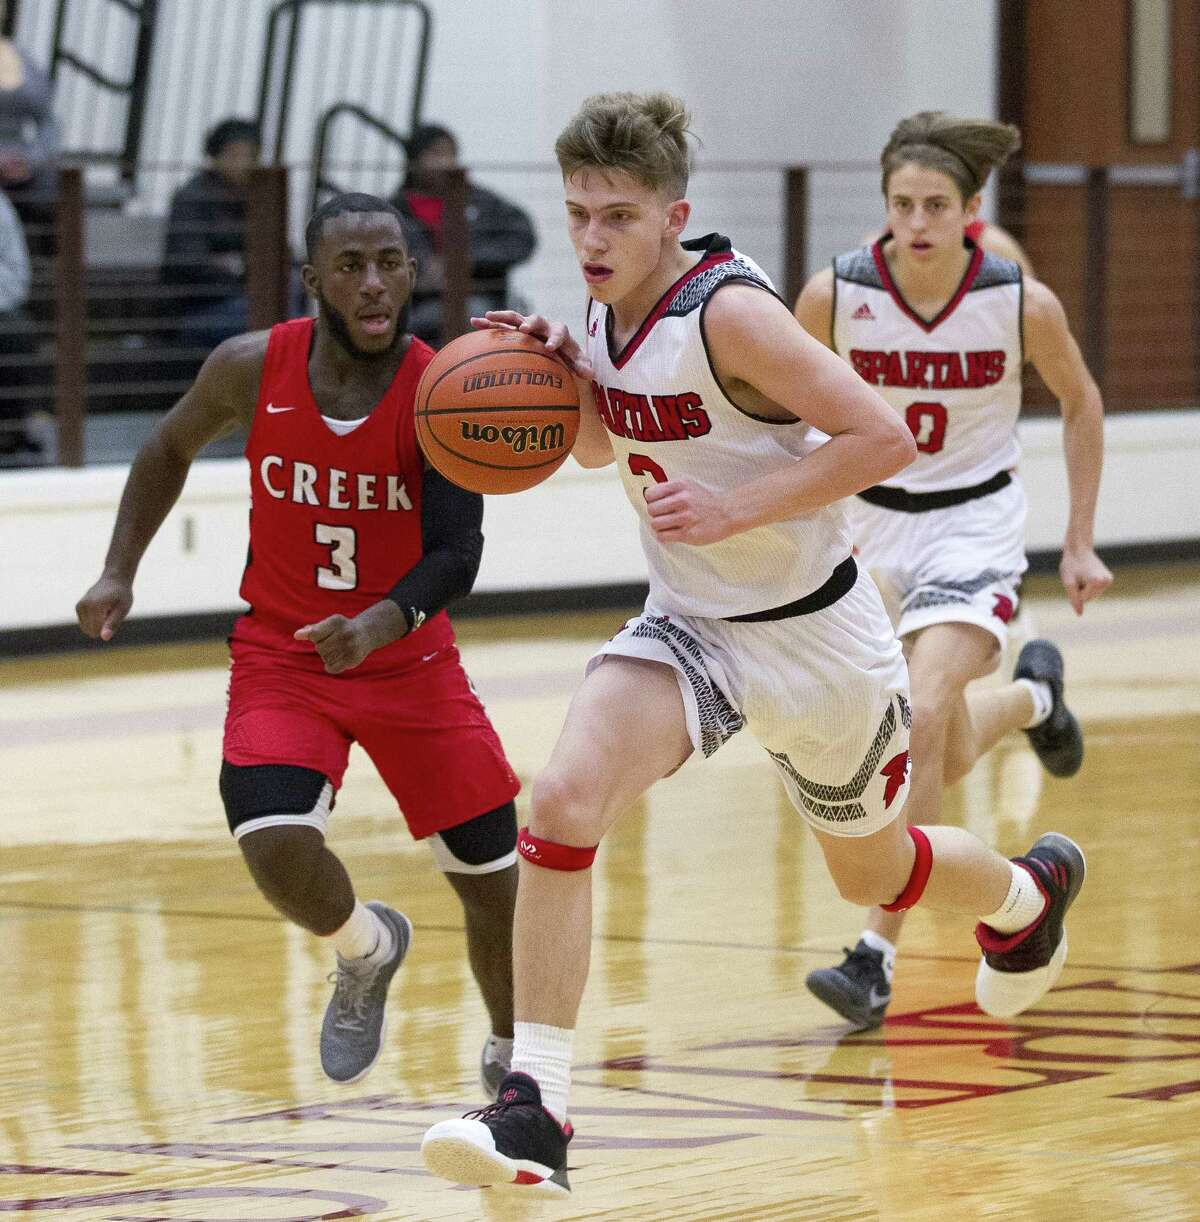 Pierce Spencer, shown here last year playing for Porter, joins his father Shannon Spencer at Lake Creek this season.